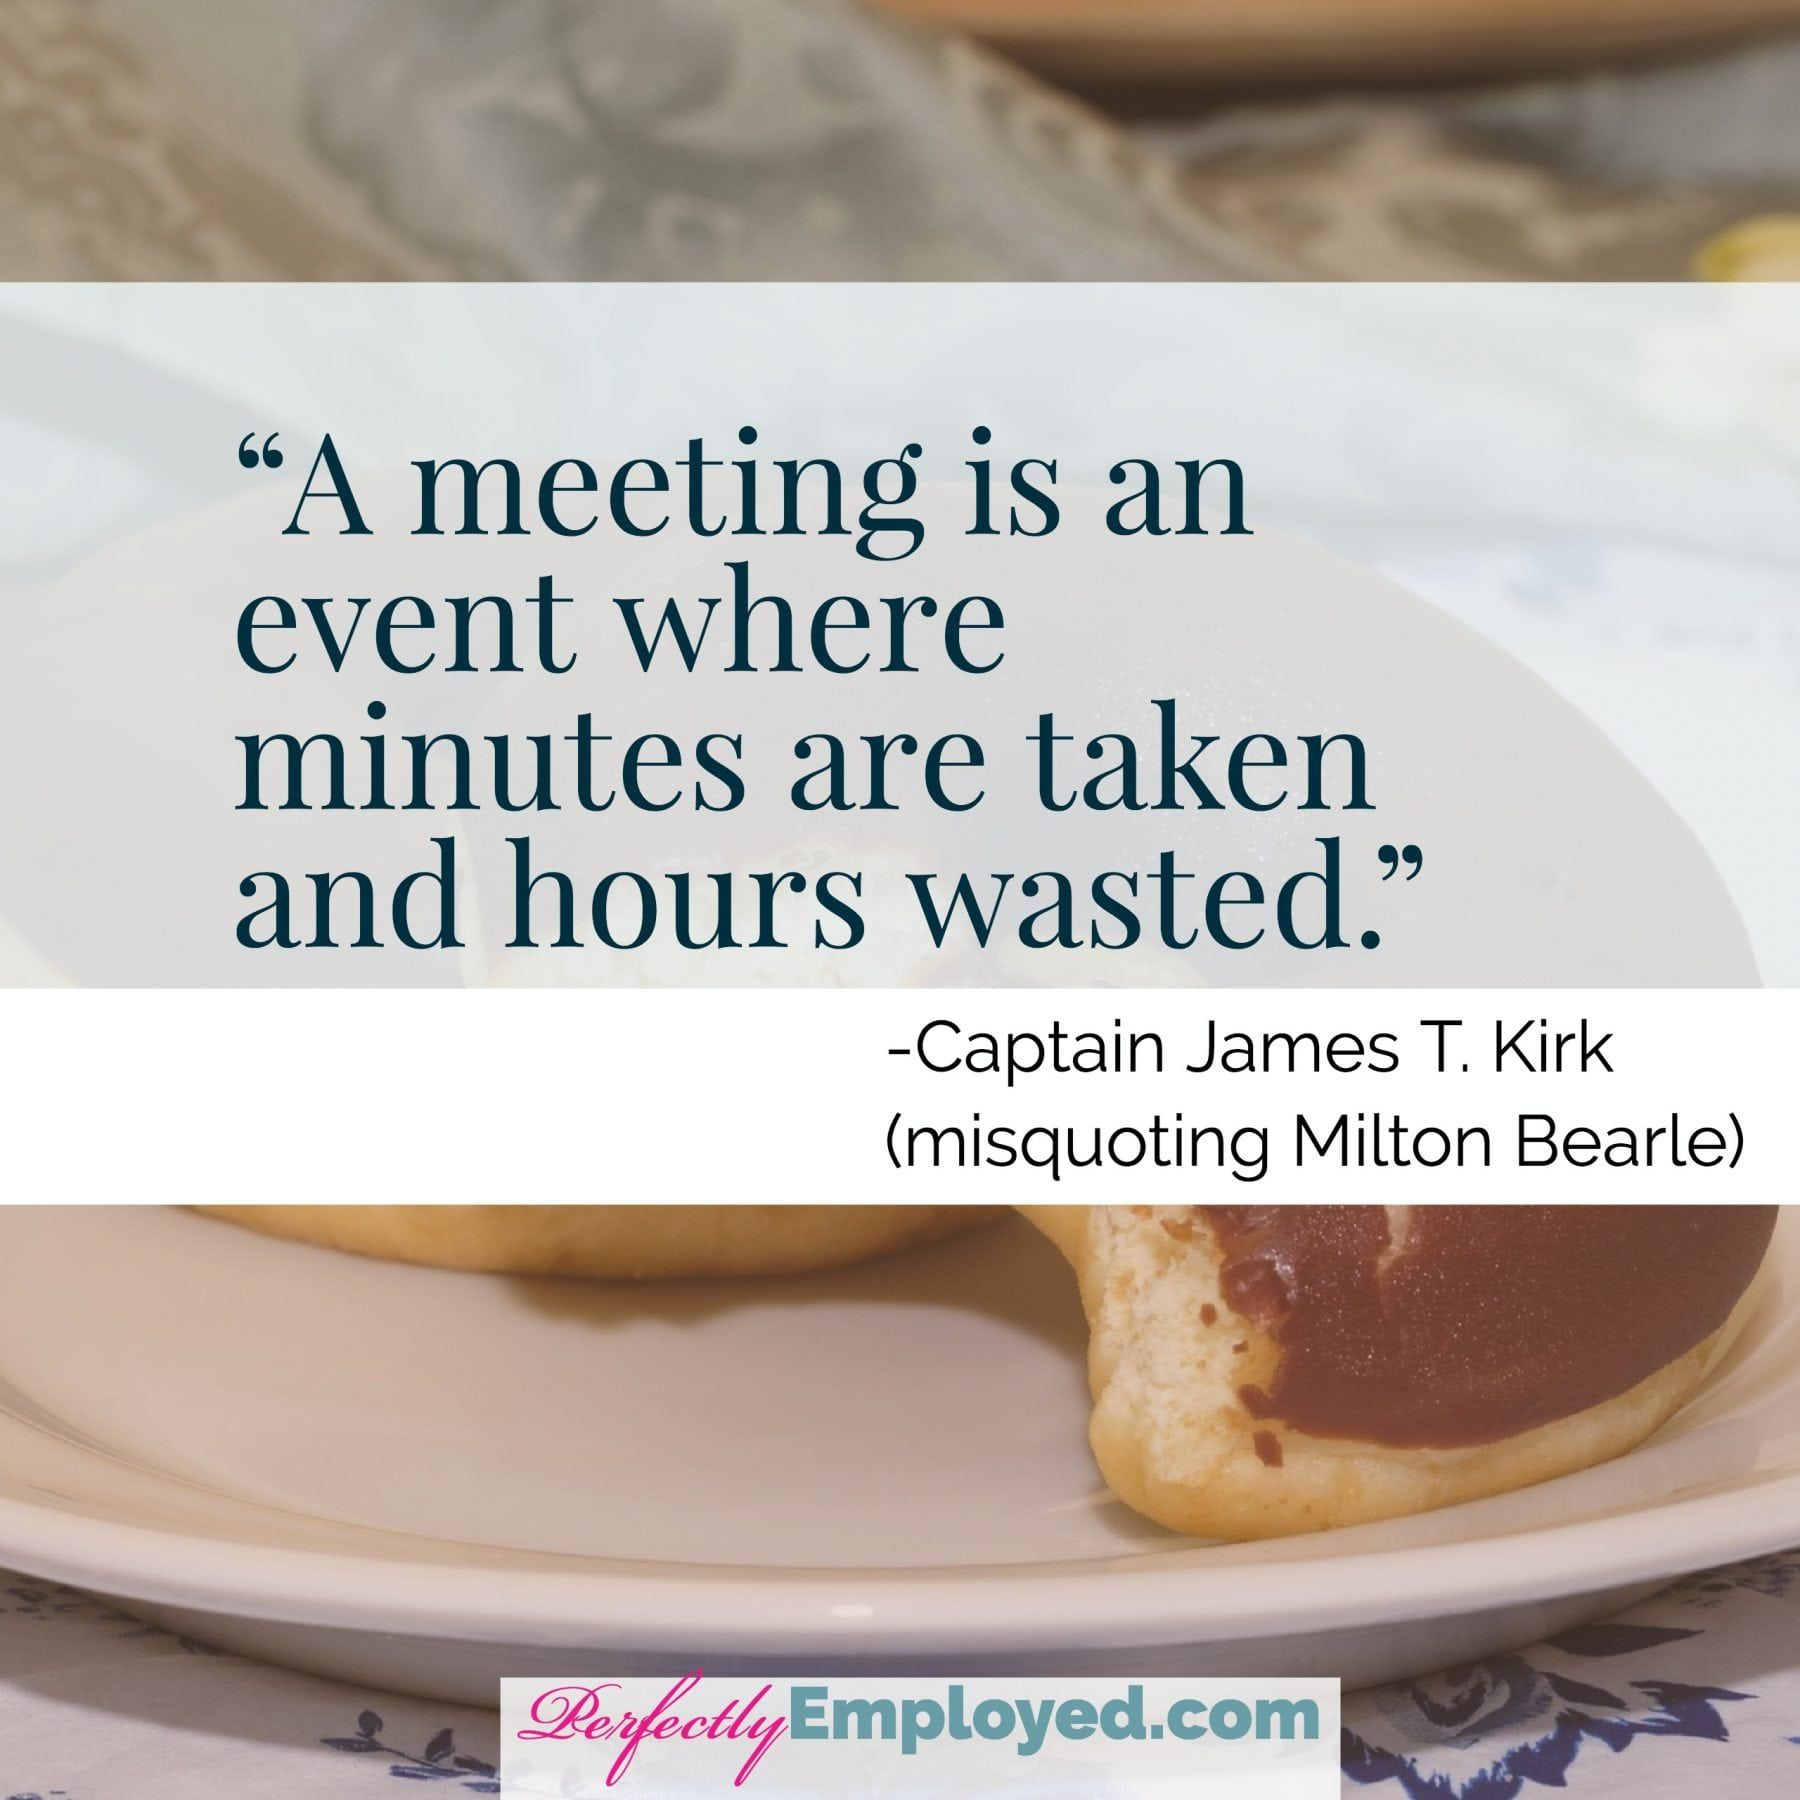 11 Funny Quotes About Meetings To Read While Waiting On Your Next Meeting To Start Perfectly Employed Meeting Funny Quotes Waiting